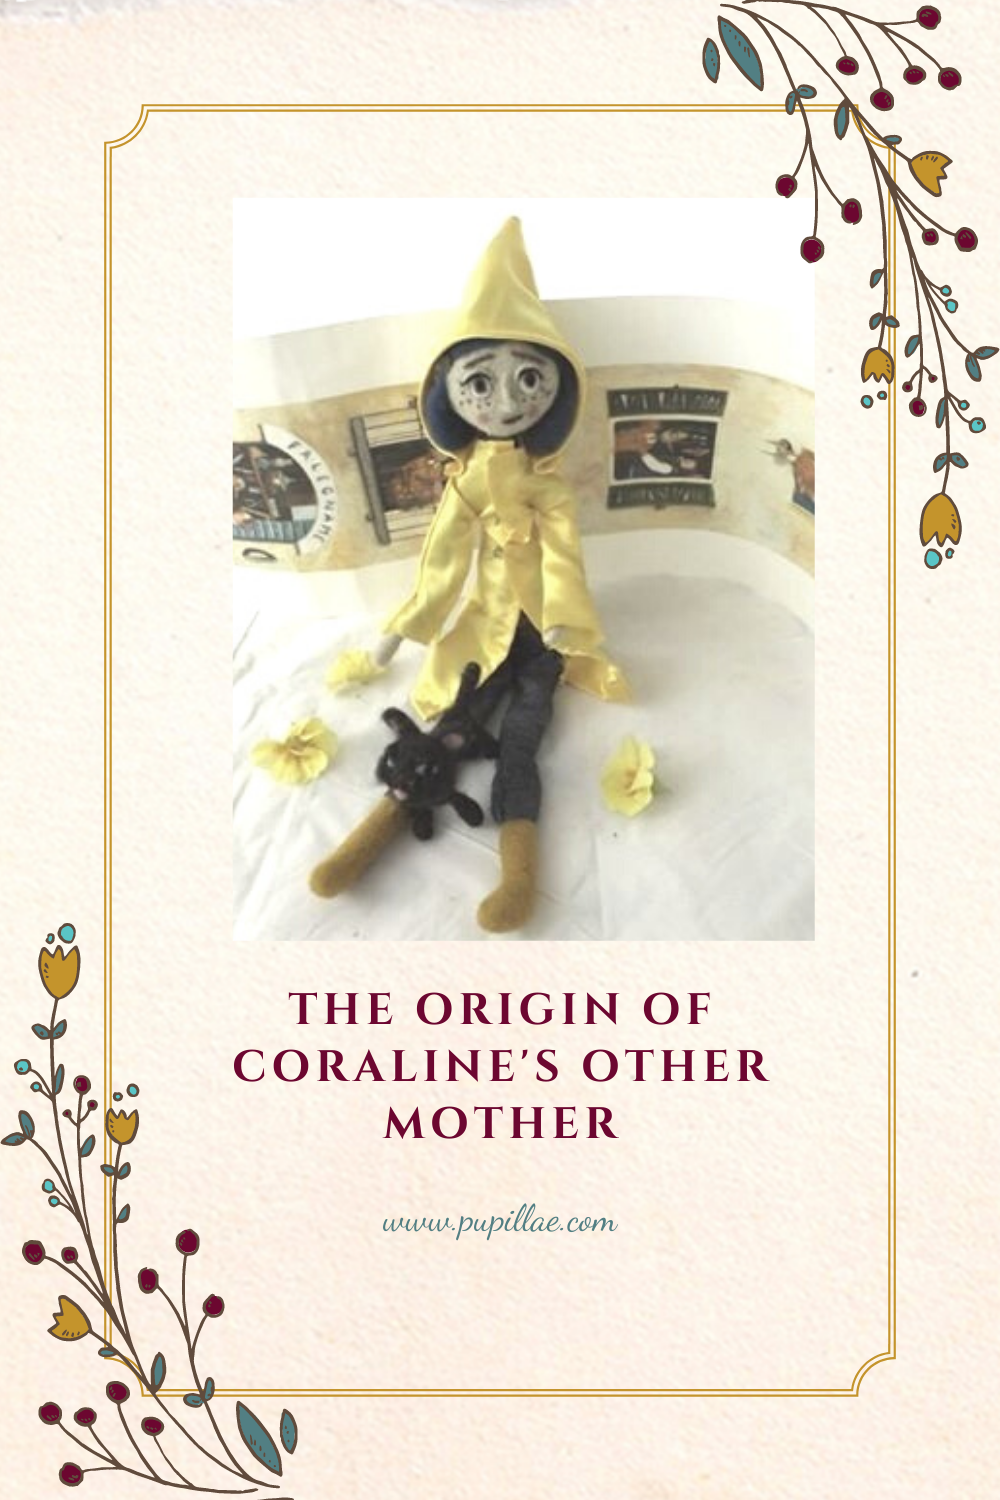 The origin of Coraline's other mother.